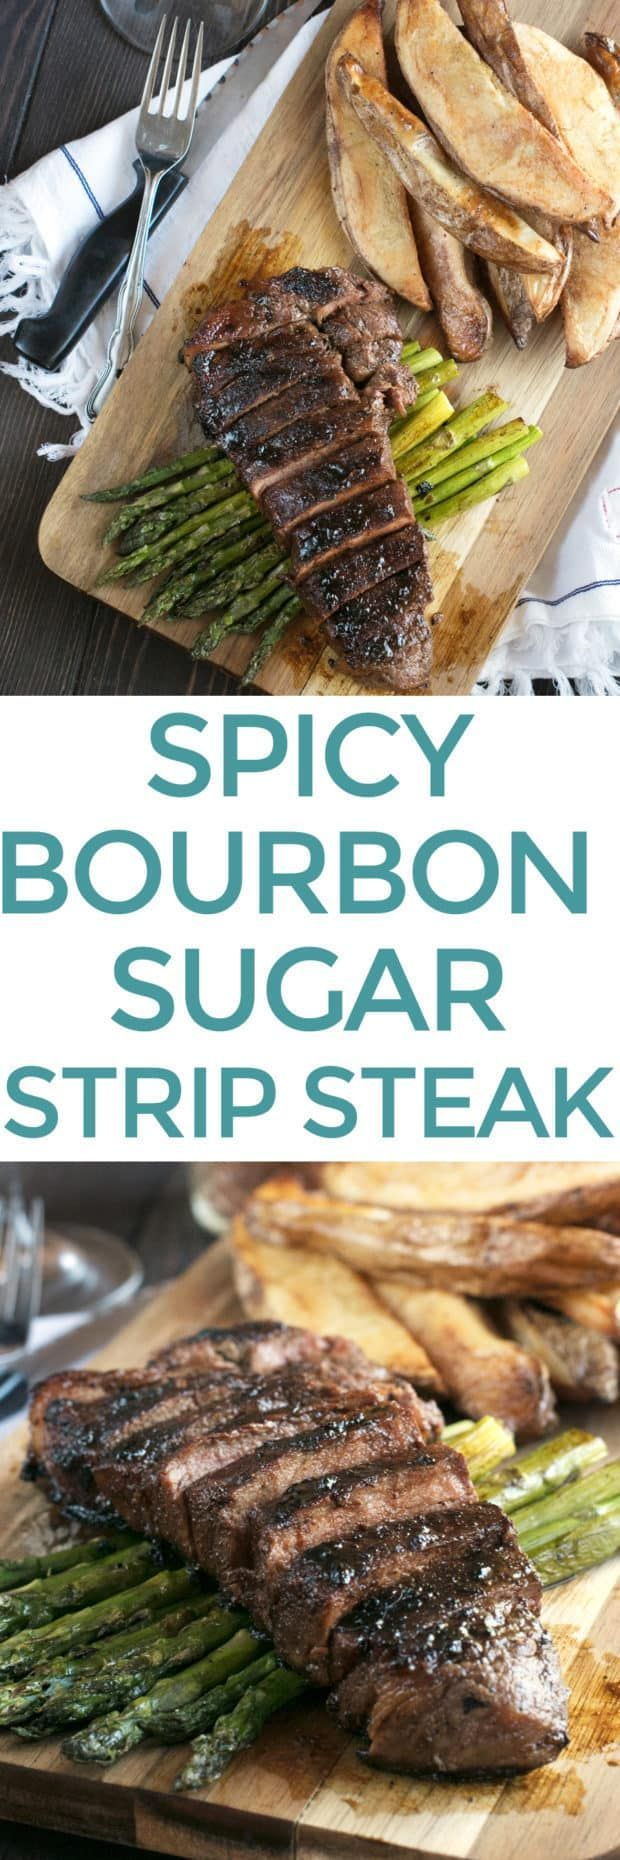 Spicy Bourbon Sugar Rubbed Strip Steak is what's for dinner tonight! Homemade bourbon sugar gets added to a spicy rub mixture that forms a delicious crust on the outside of the strip steak. The sweet heat and juicy meat will take your steak game to the next level! Spicy Bourbon Sugar Rubbed Strip Steak | cakenknife.com #dinner #recipe #steak